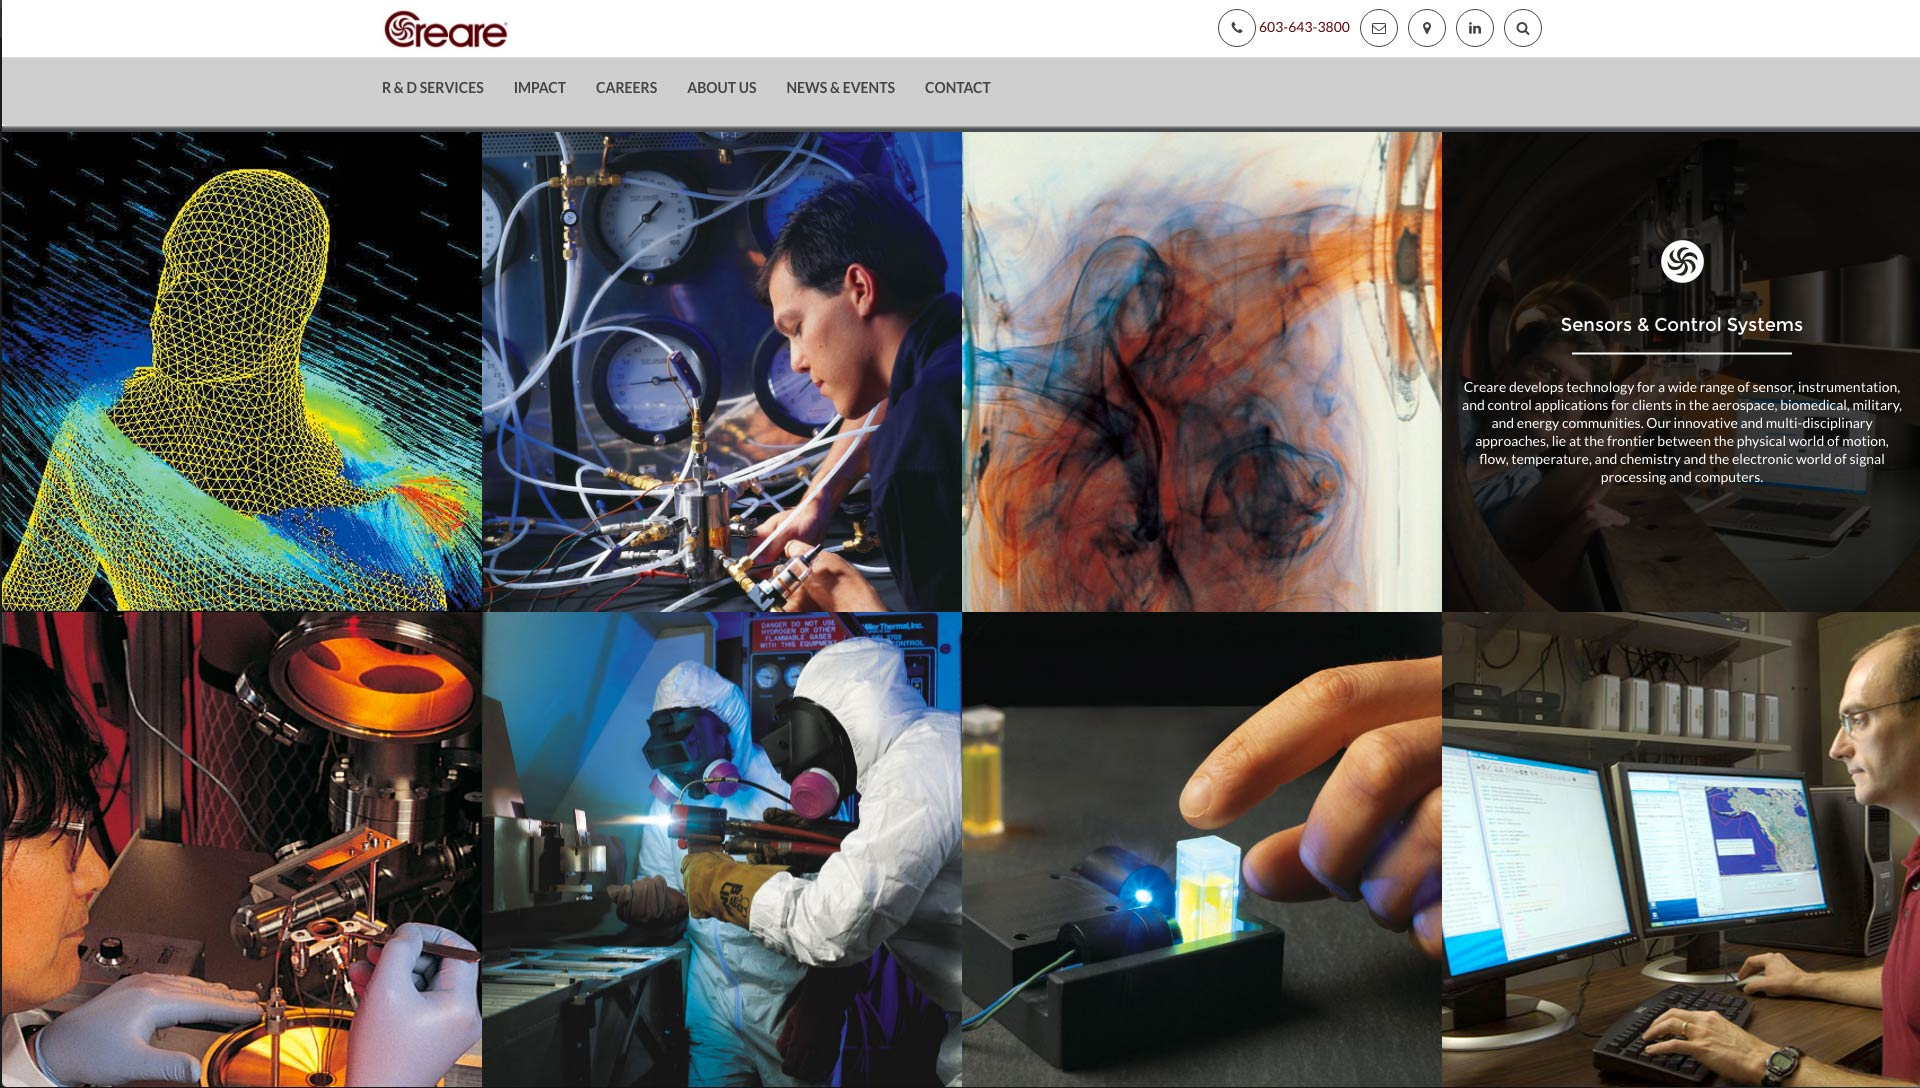 Services image blocking design for the Creare website